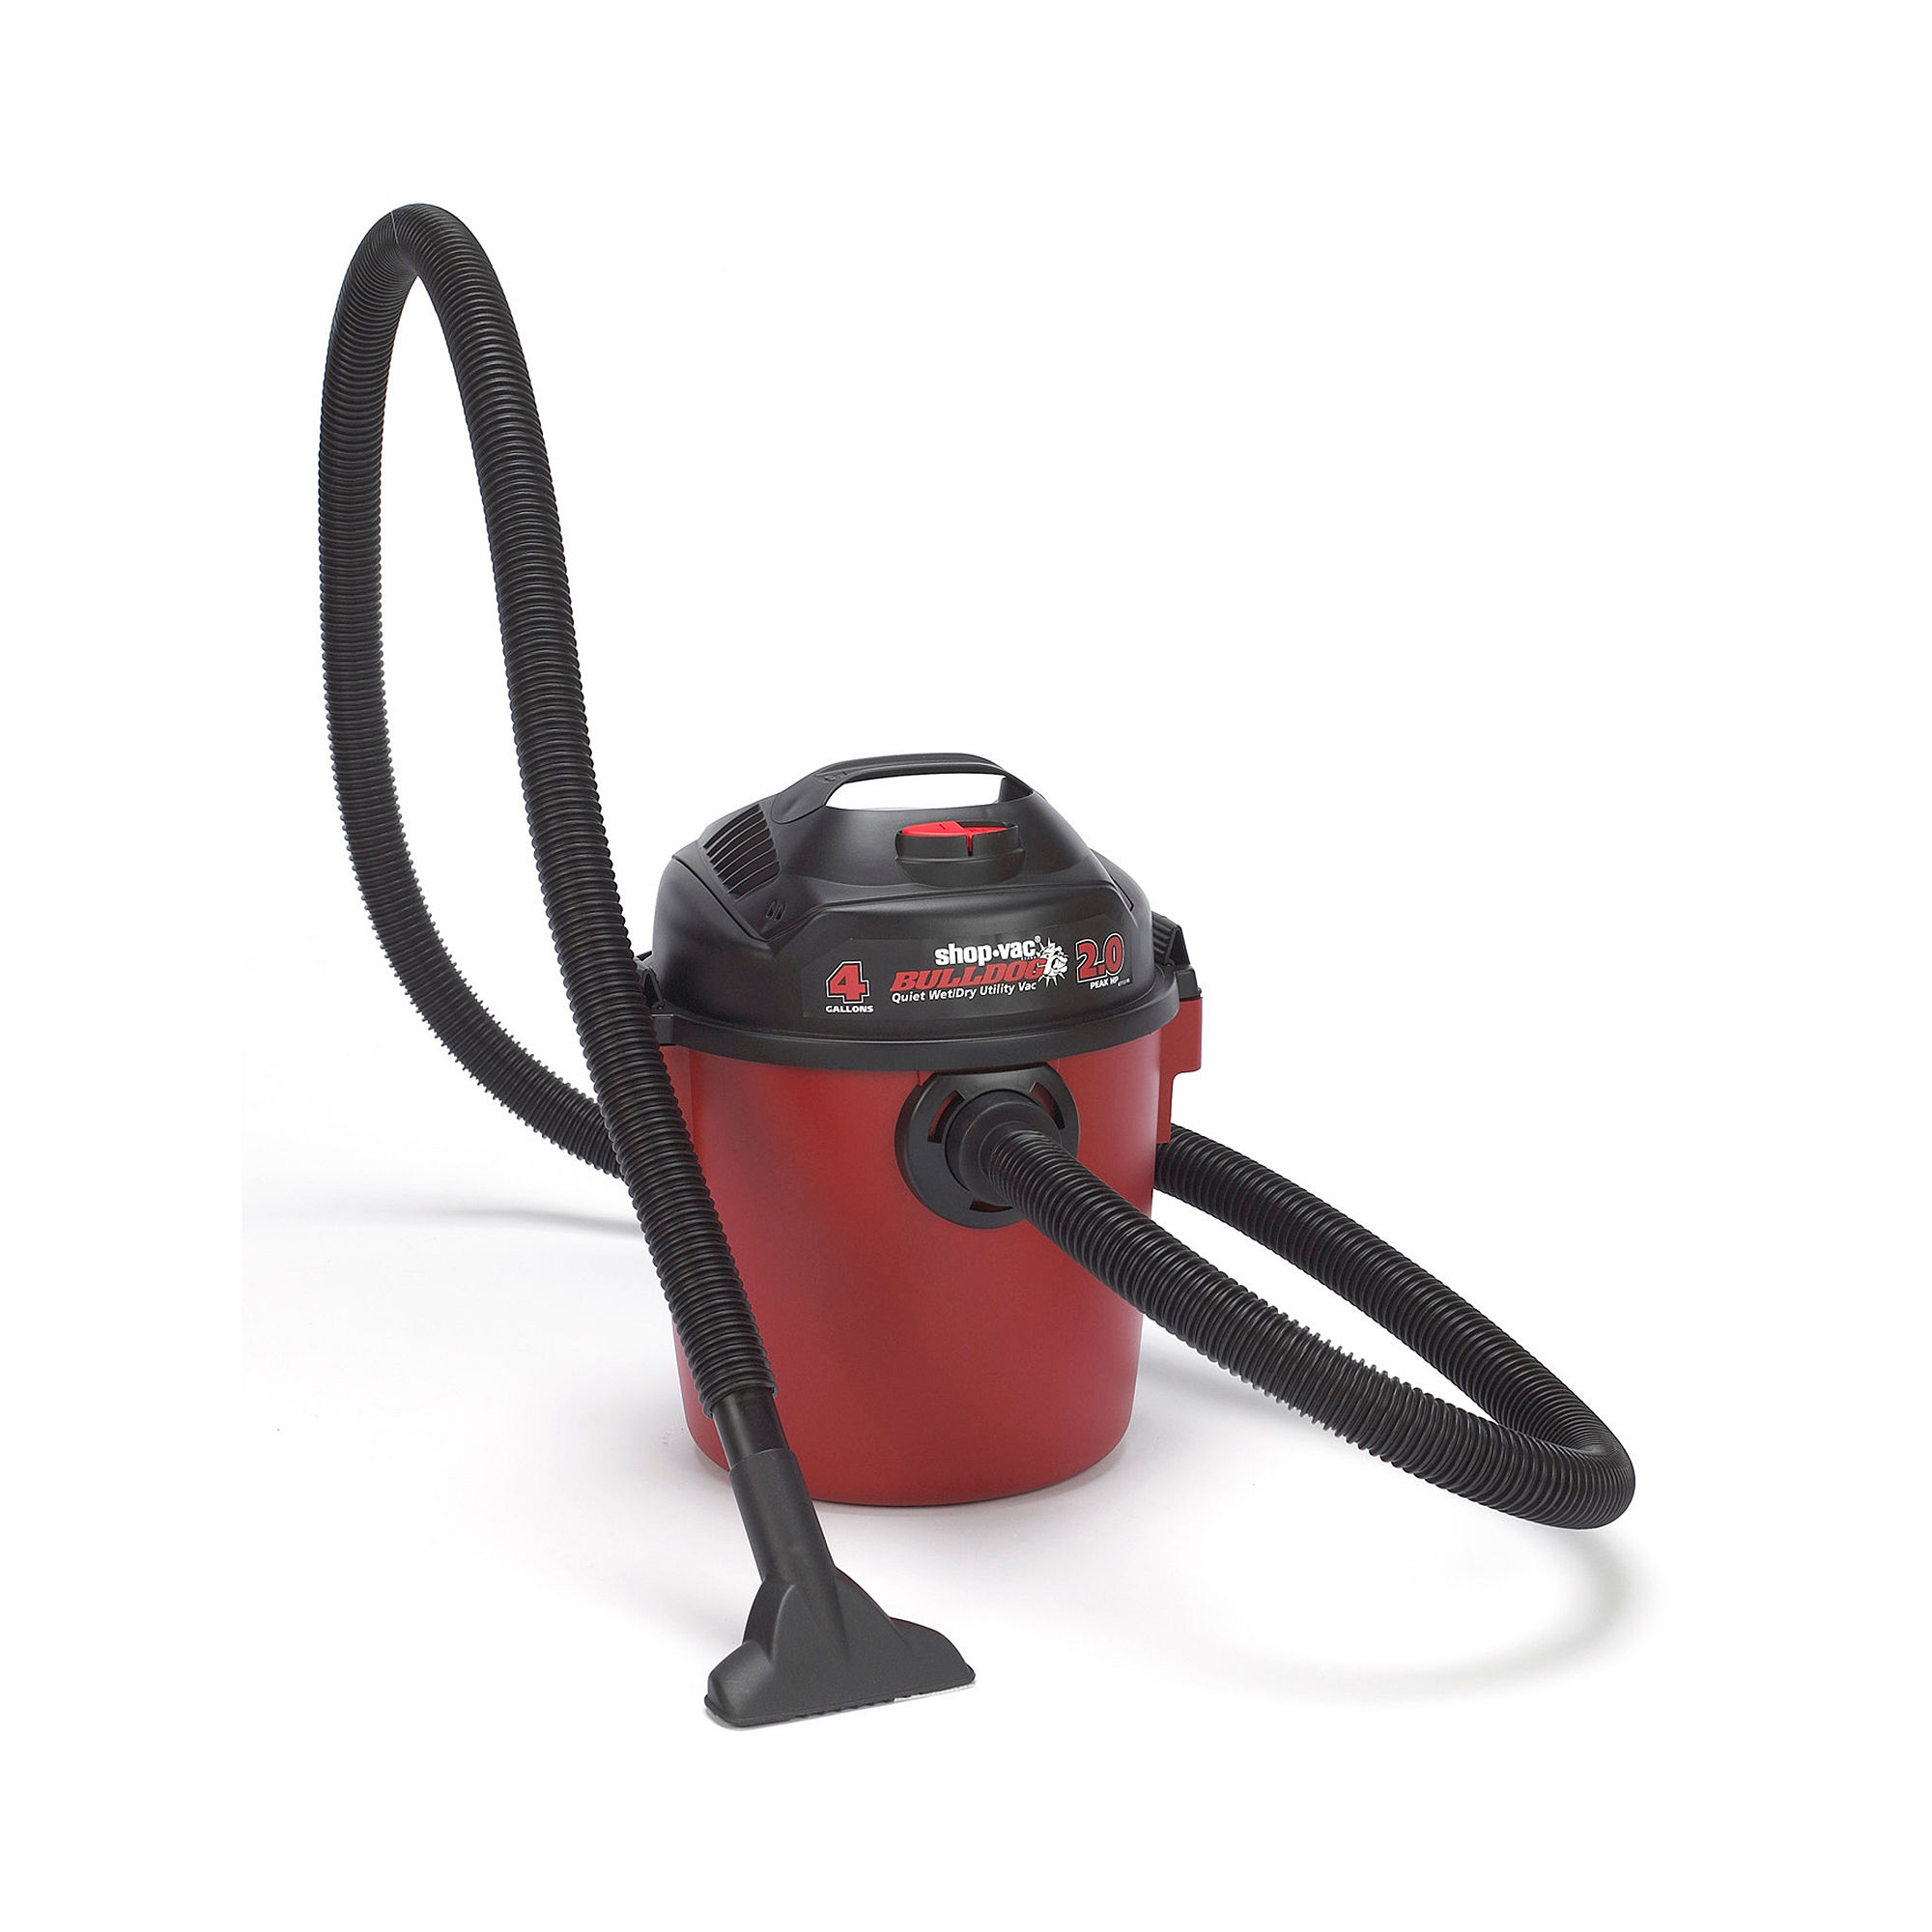 Shop-Vac BULLDOG 4-Gallon Portable Wet/Dry Vacuum Cleaner